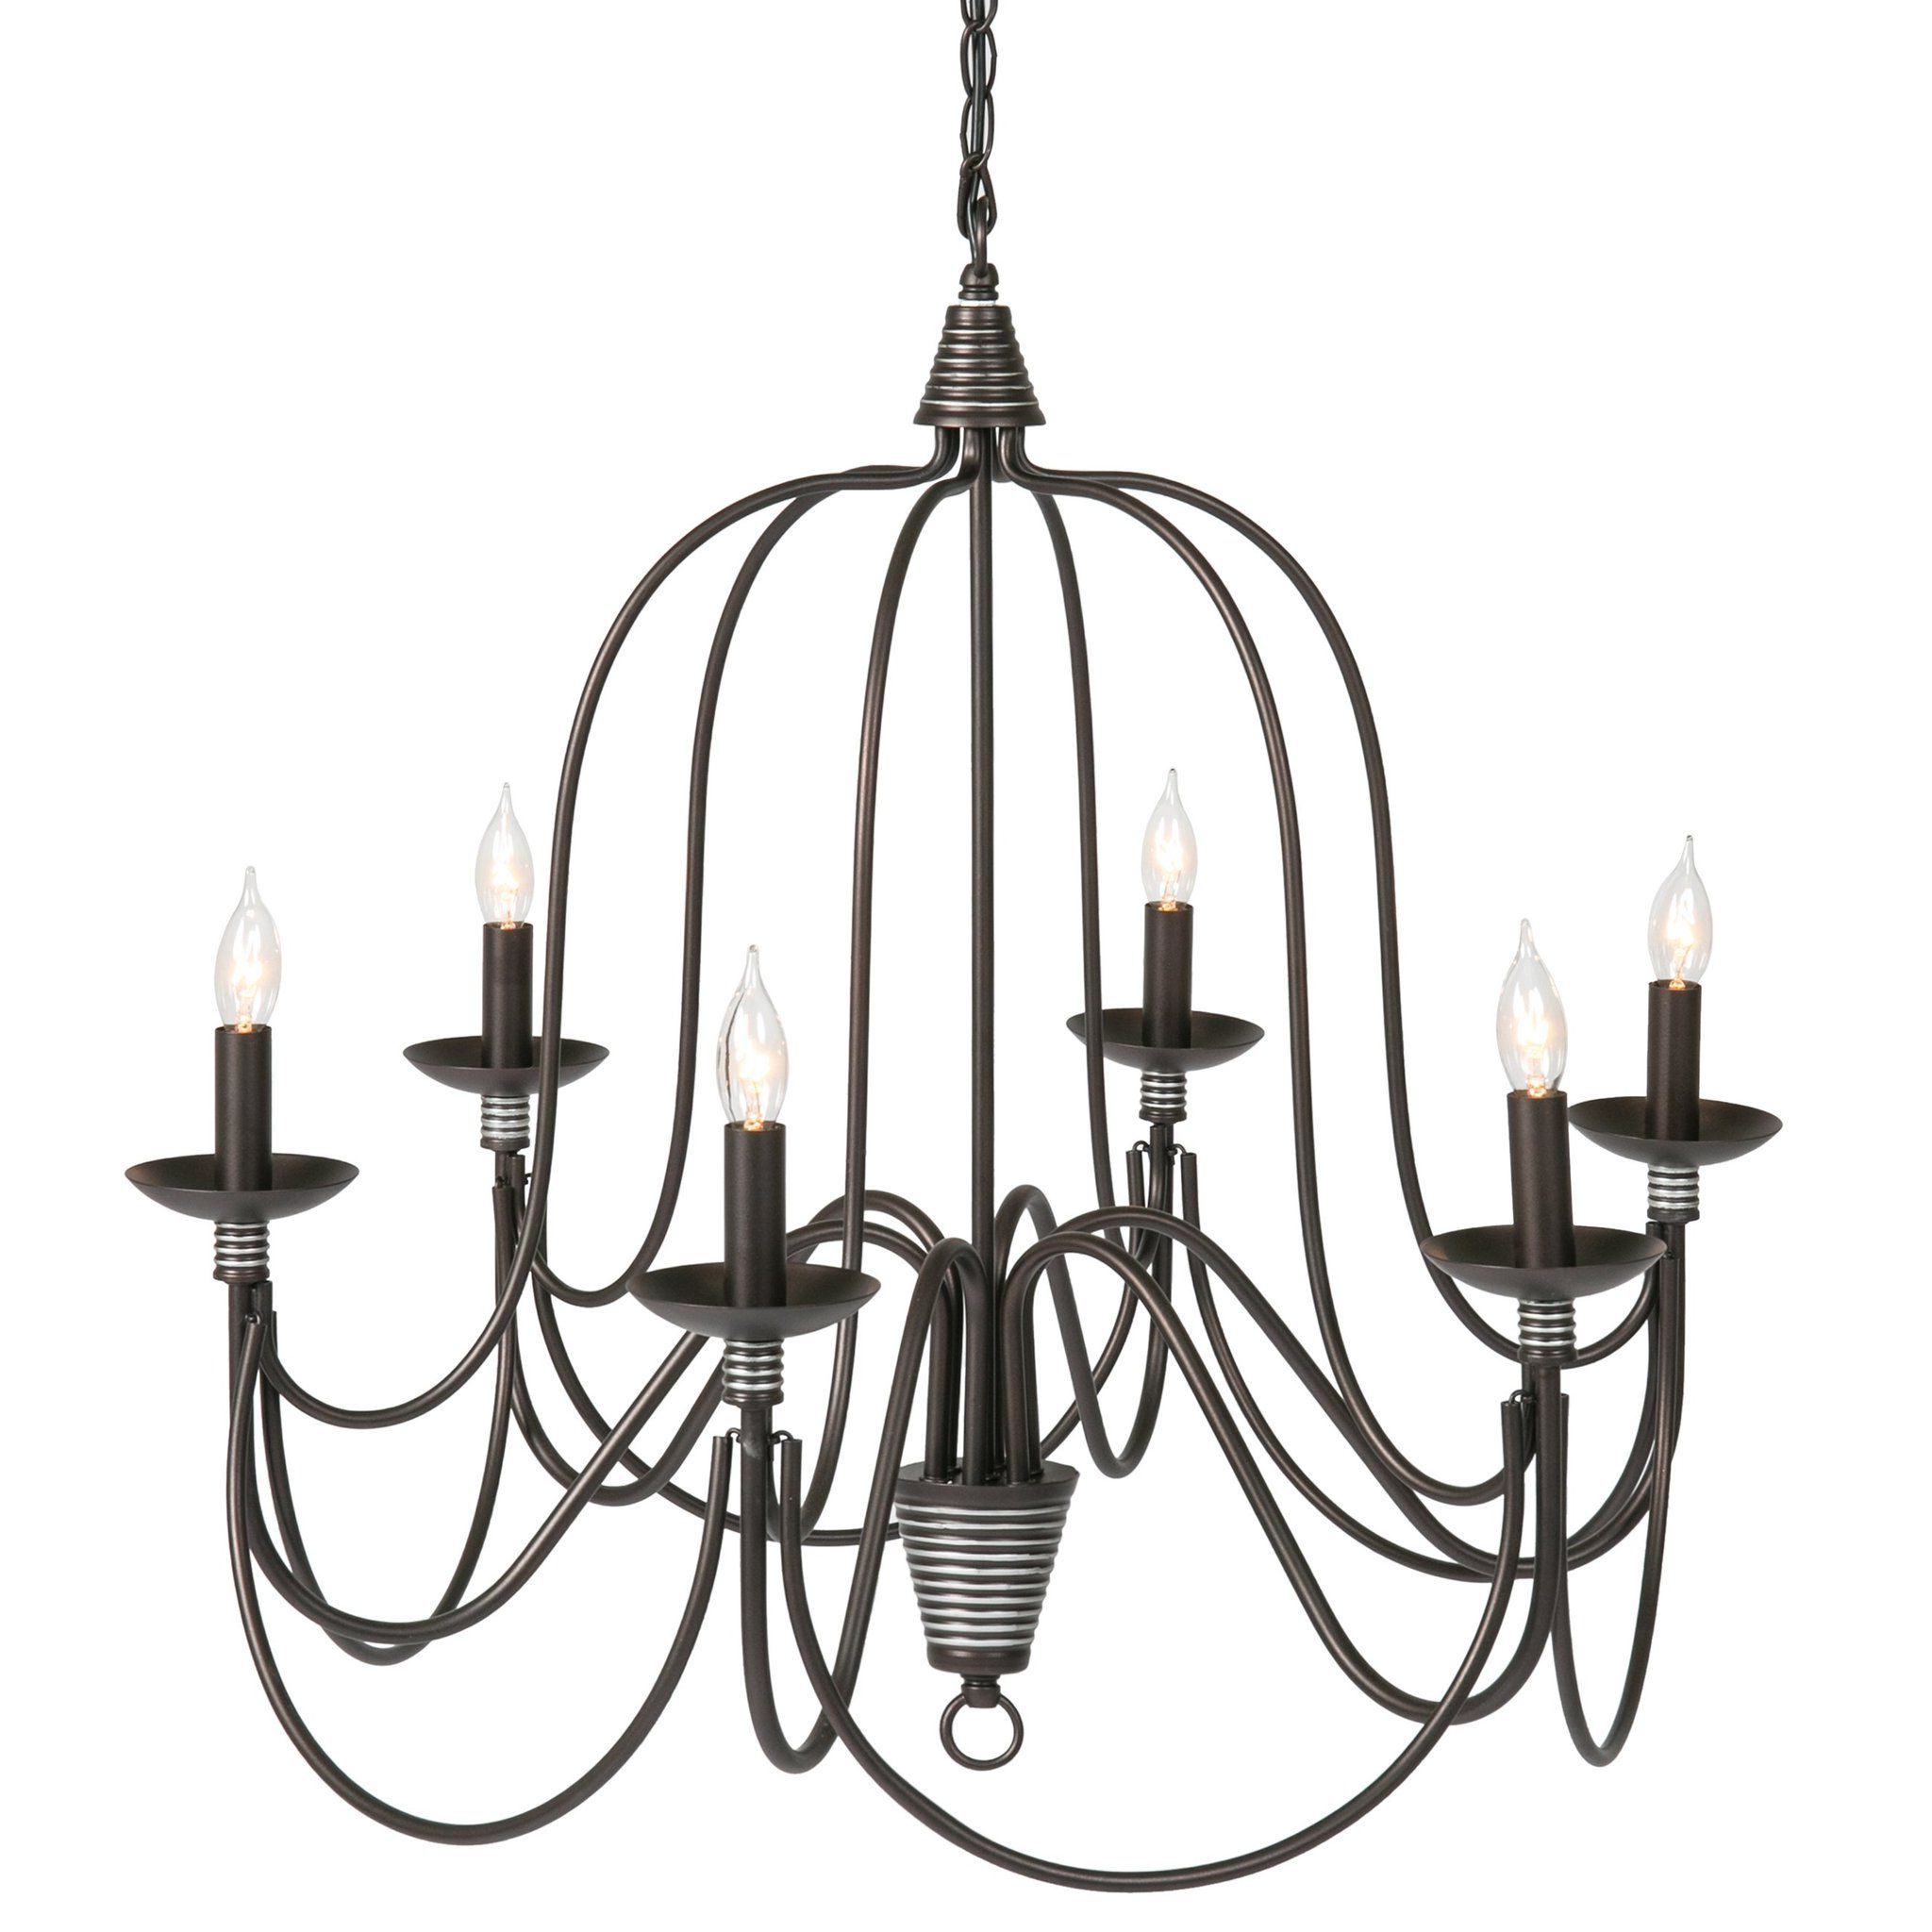 25In 6 Light Candle Chandelier Lighting Fixture W/ 41In Intended For 2019 Camilla 9 Light Candle Style Chandeliers (View 9 of 25)